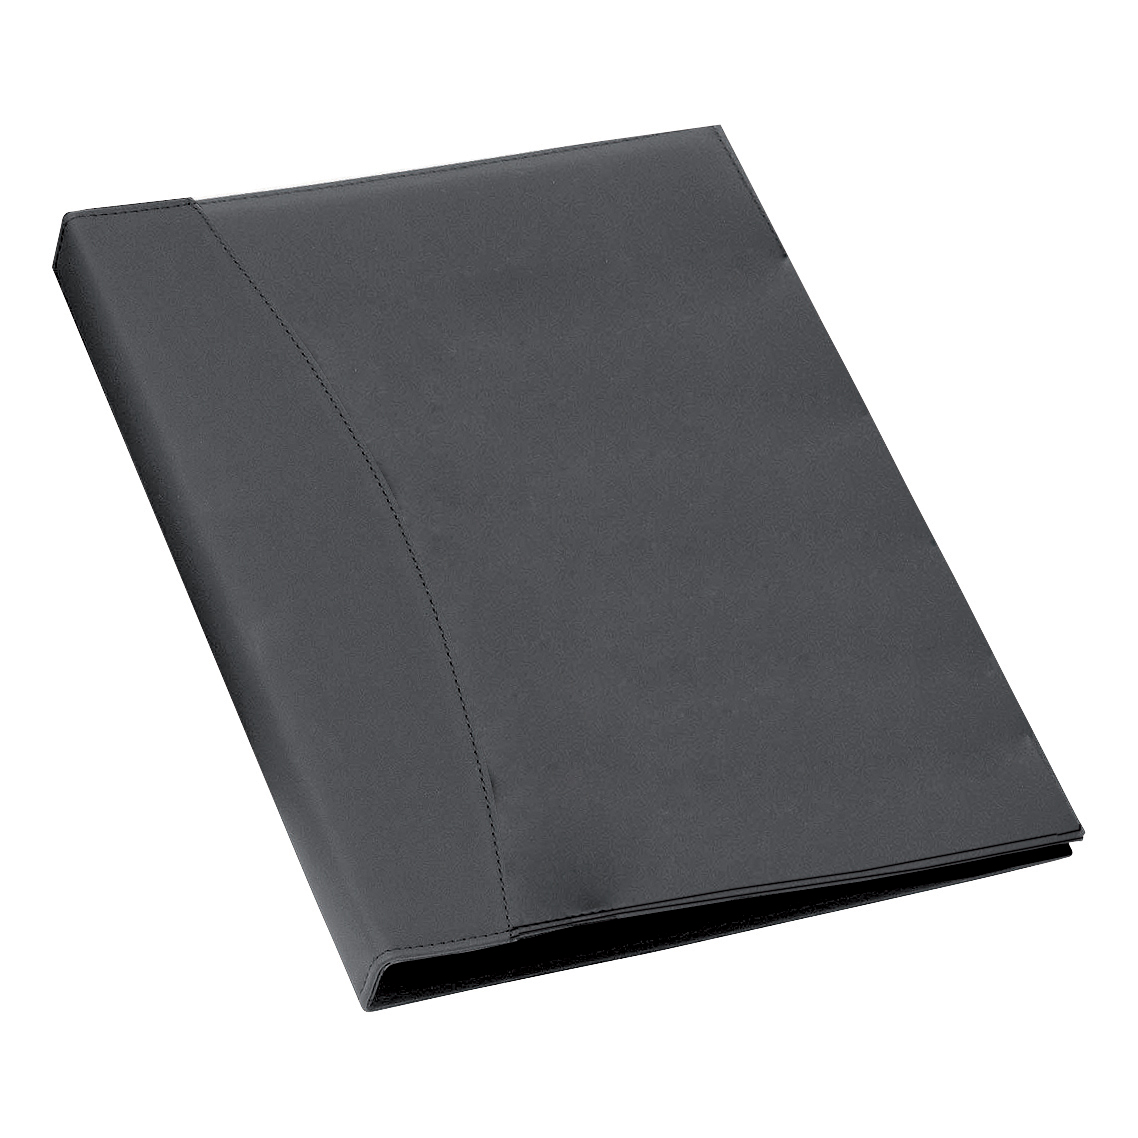 Rexel Display Book Soft Touch 24 Pockets A4 Smooth Black Ref 2101185